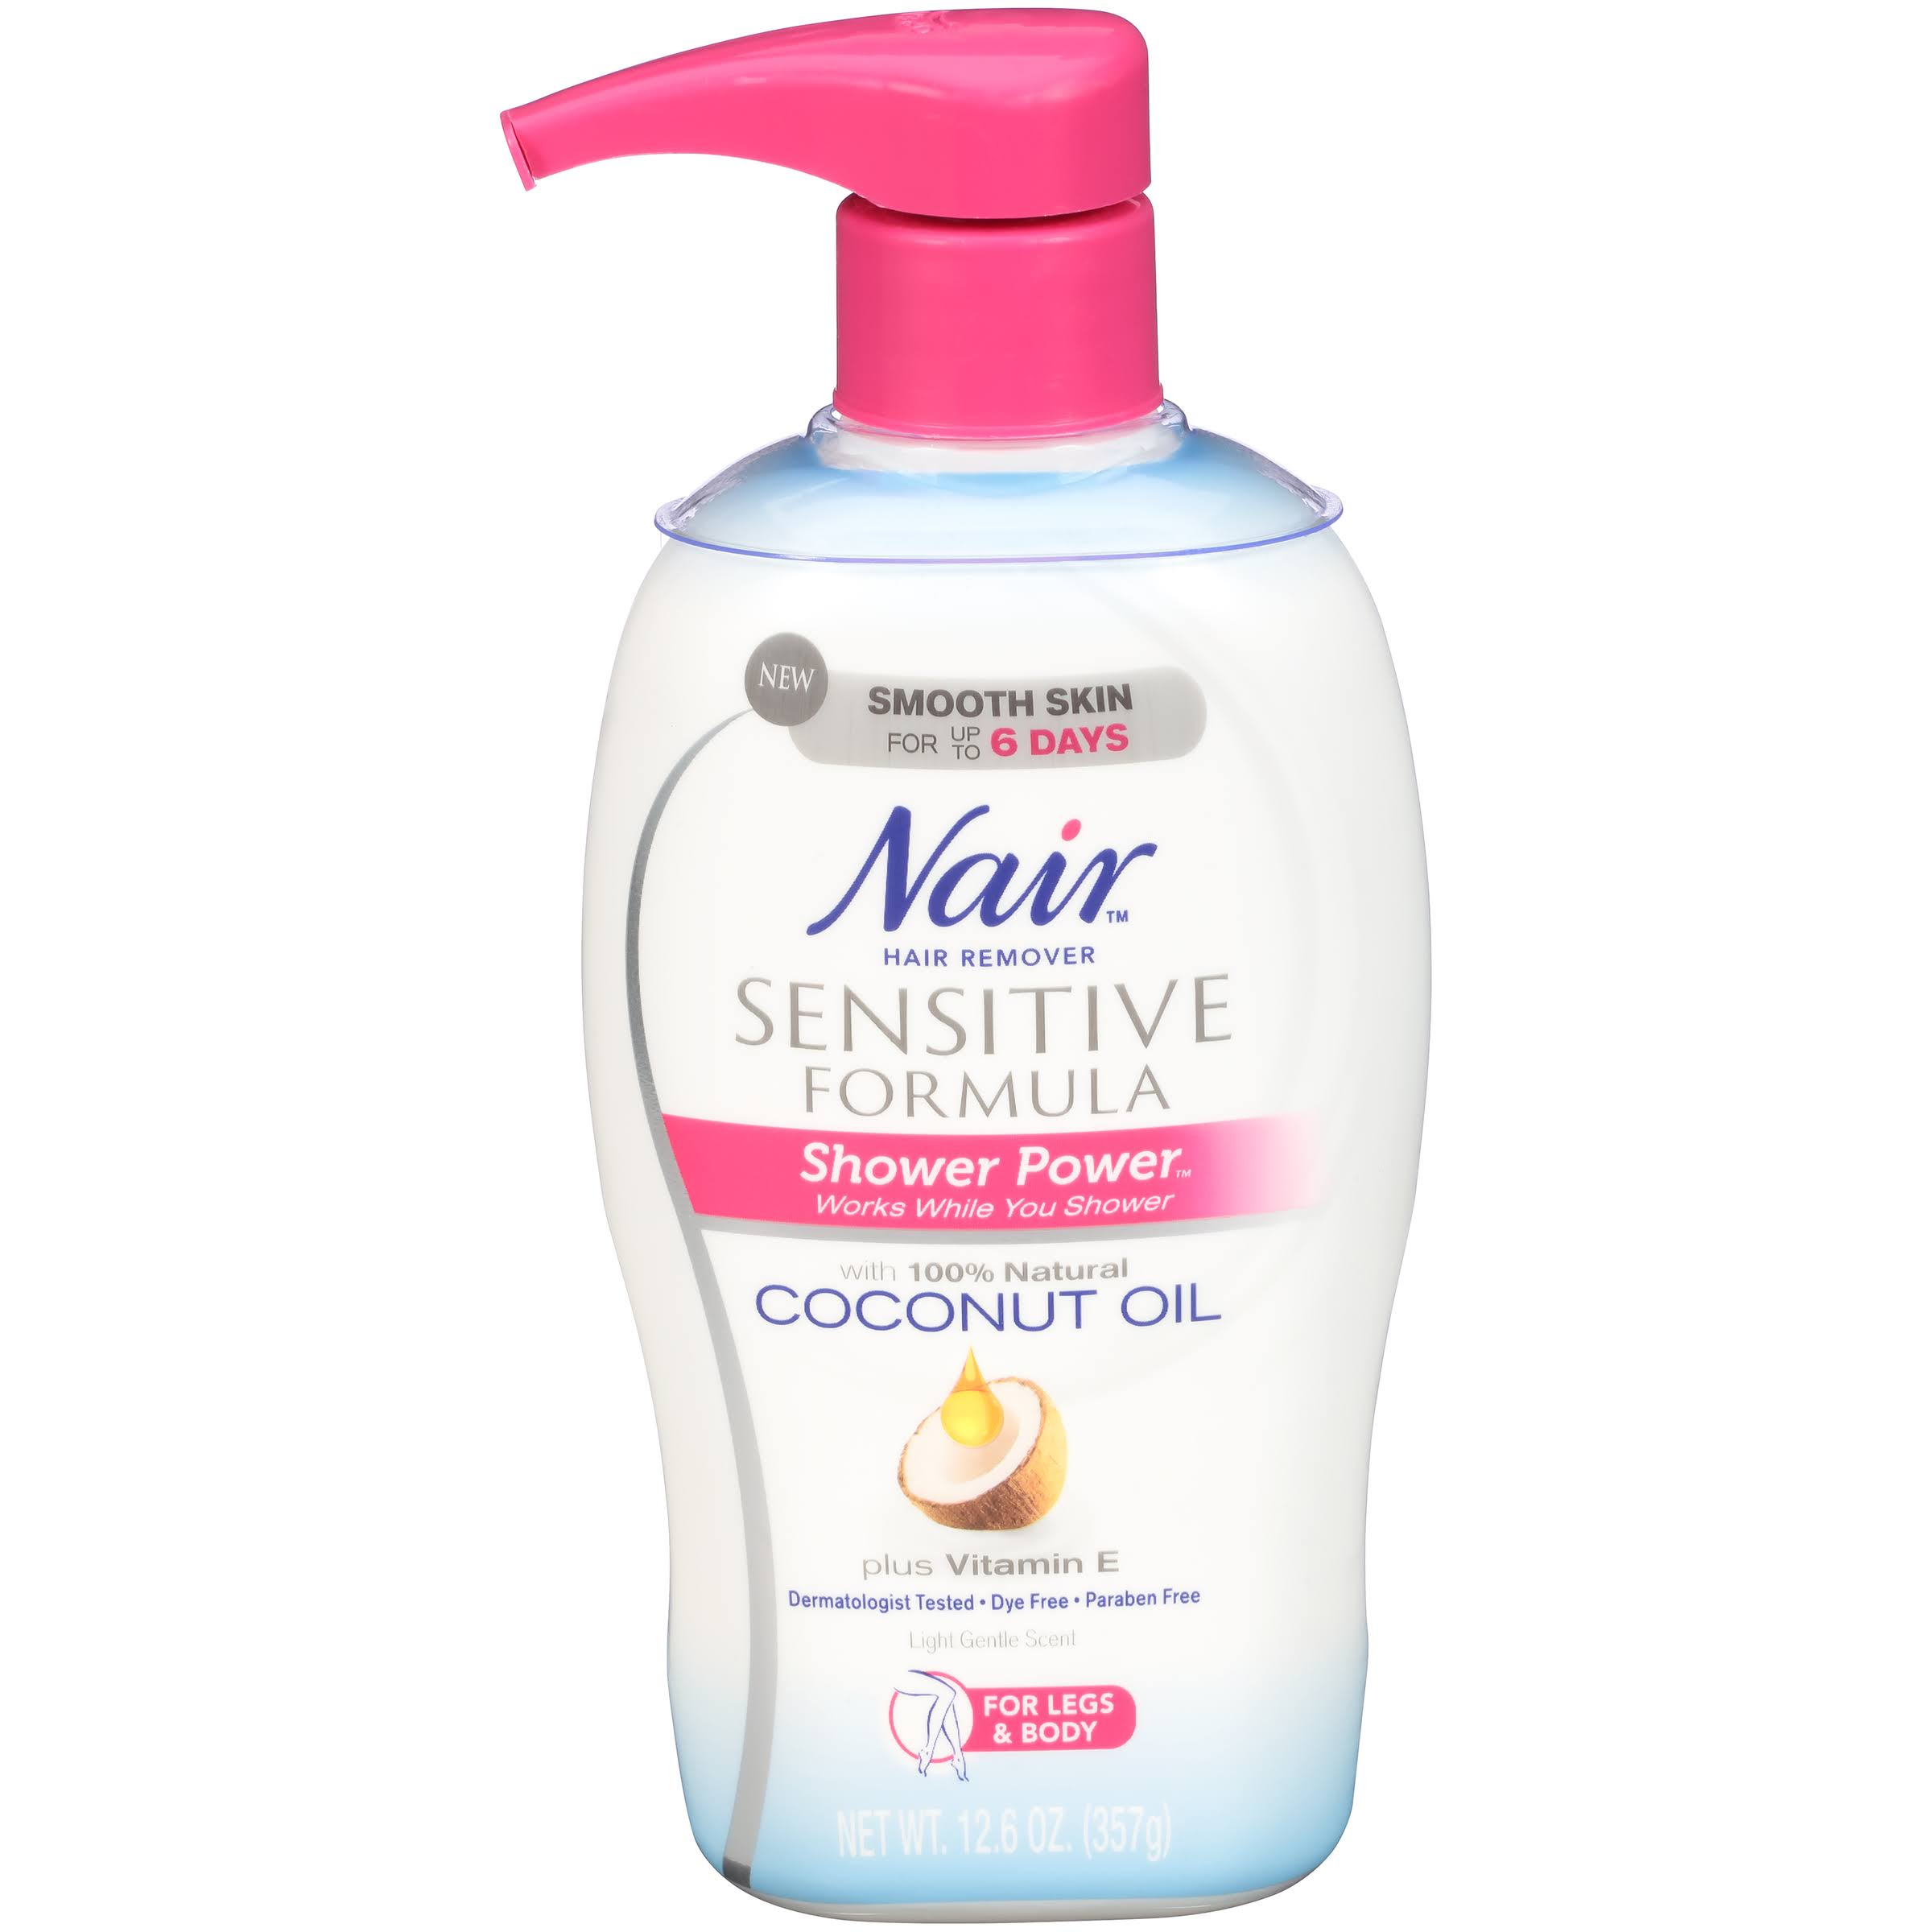 Nair Shower Power Sensitive Hair Removal - With Coconut Oil, 12.6oz